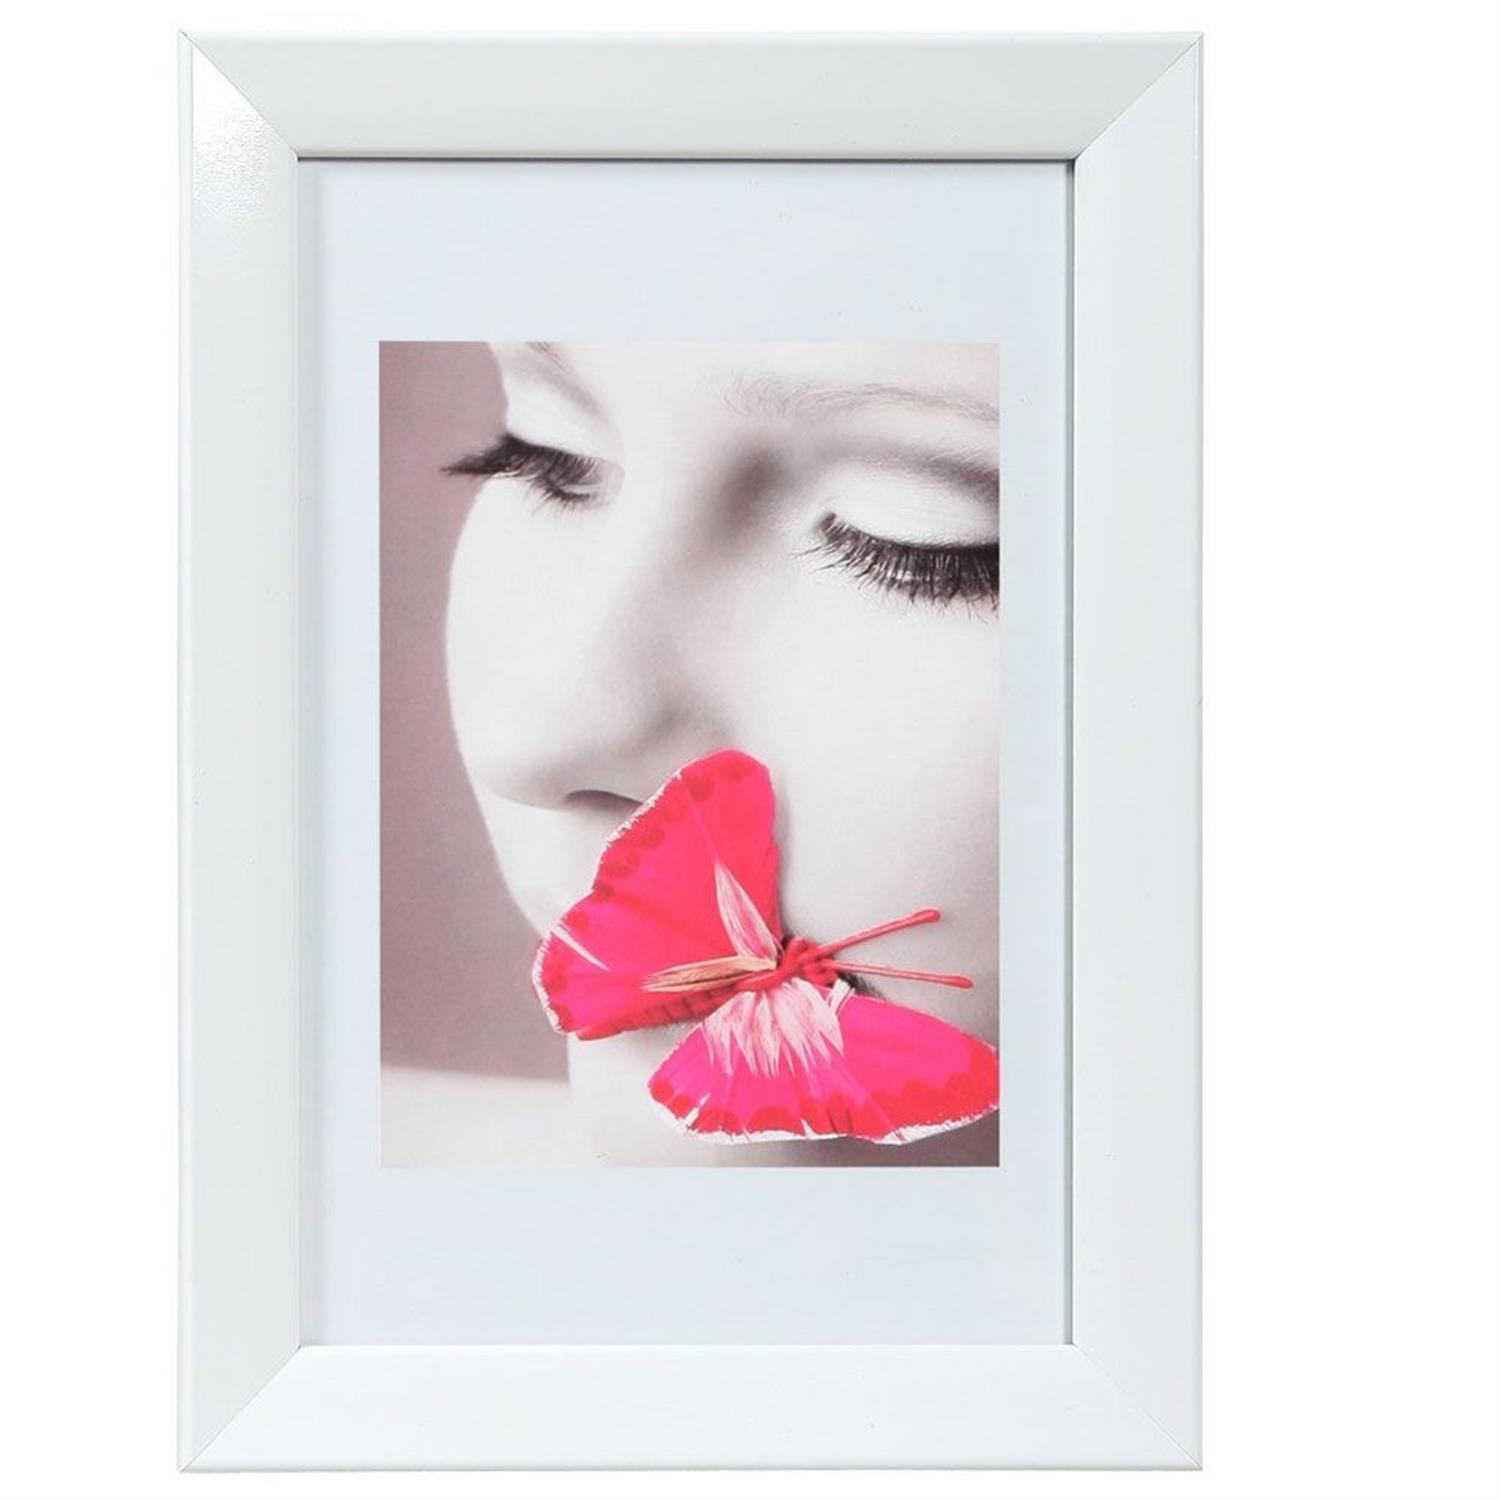 Dorr Lack White 8x6 Photo Frame